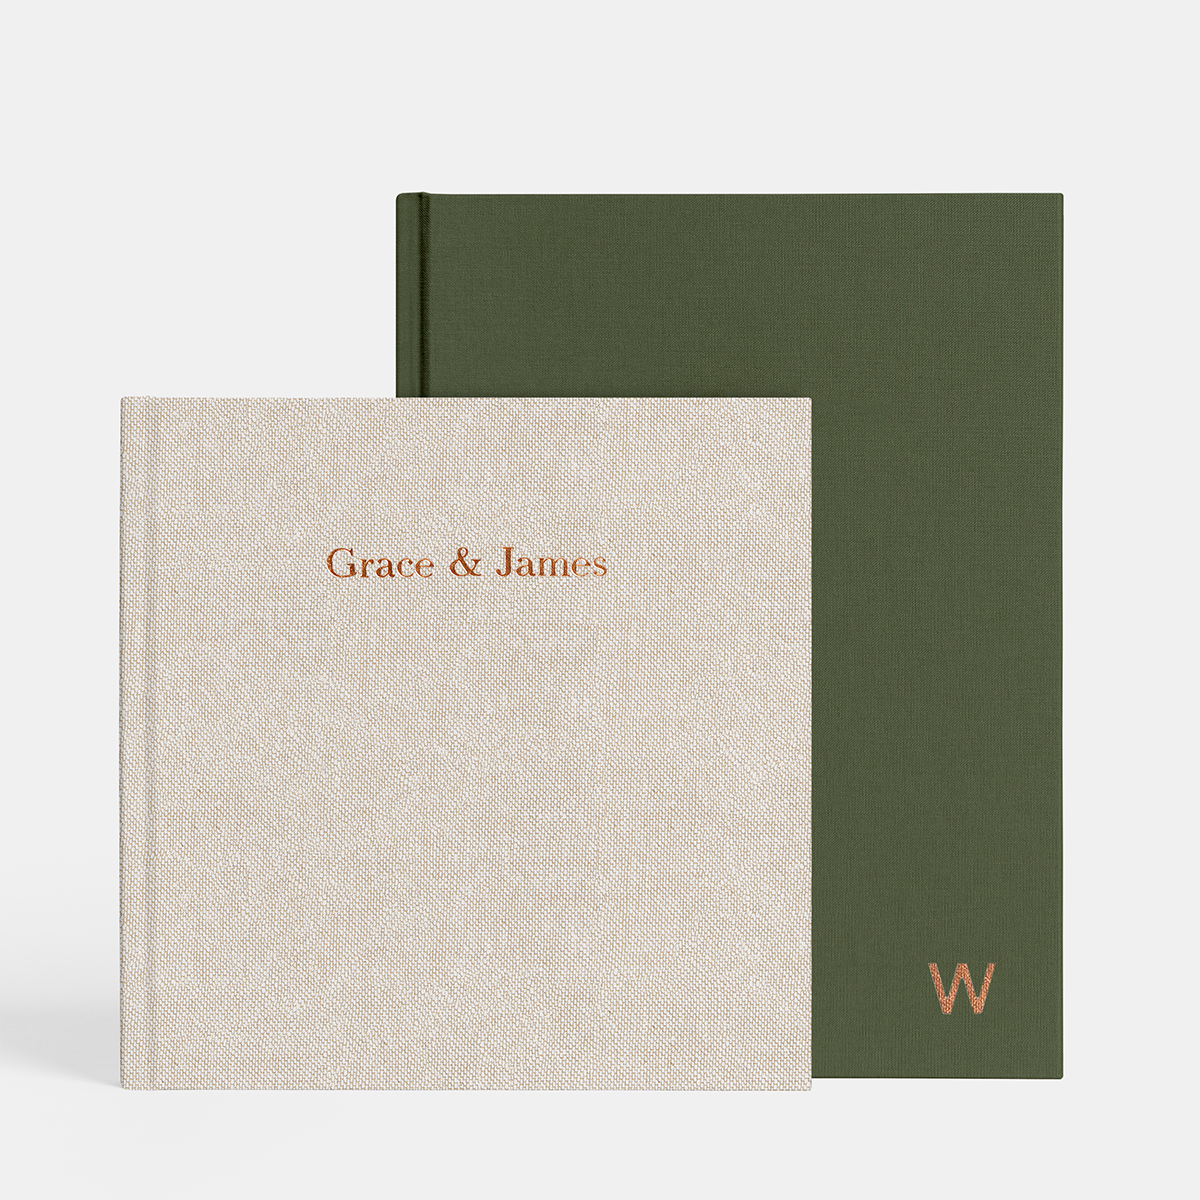 Oatmeal layflat album titled Grace and James stacked in front of olive layflat, both featuring copper foil